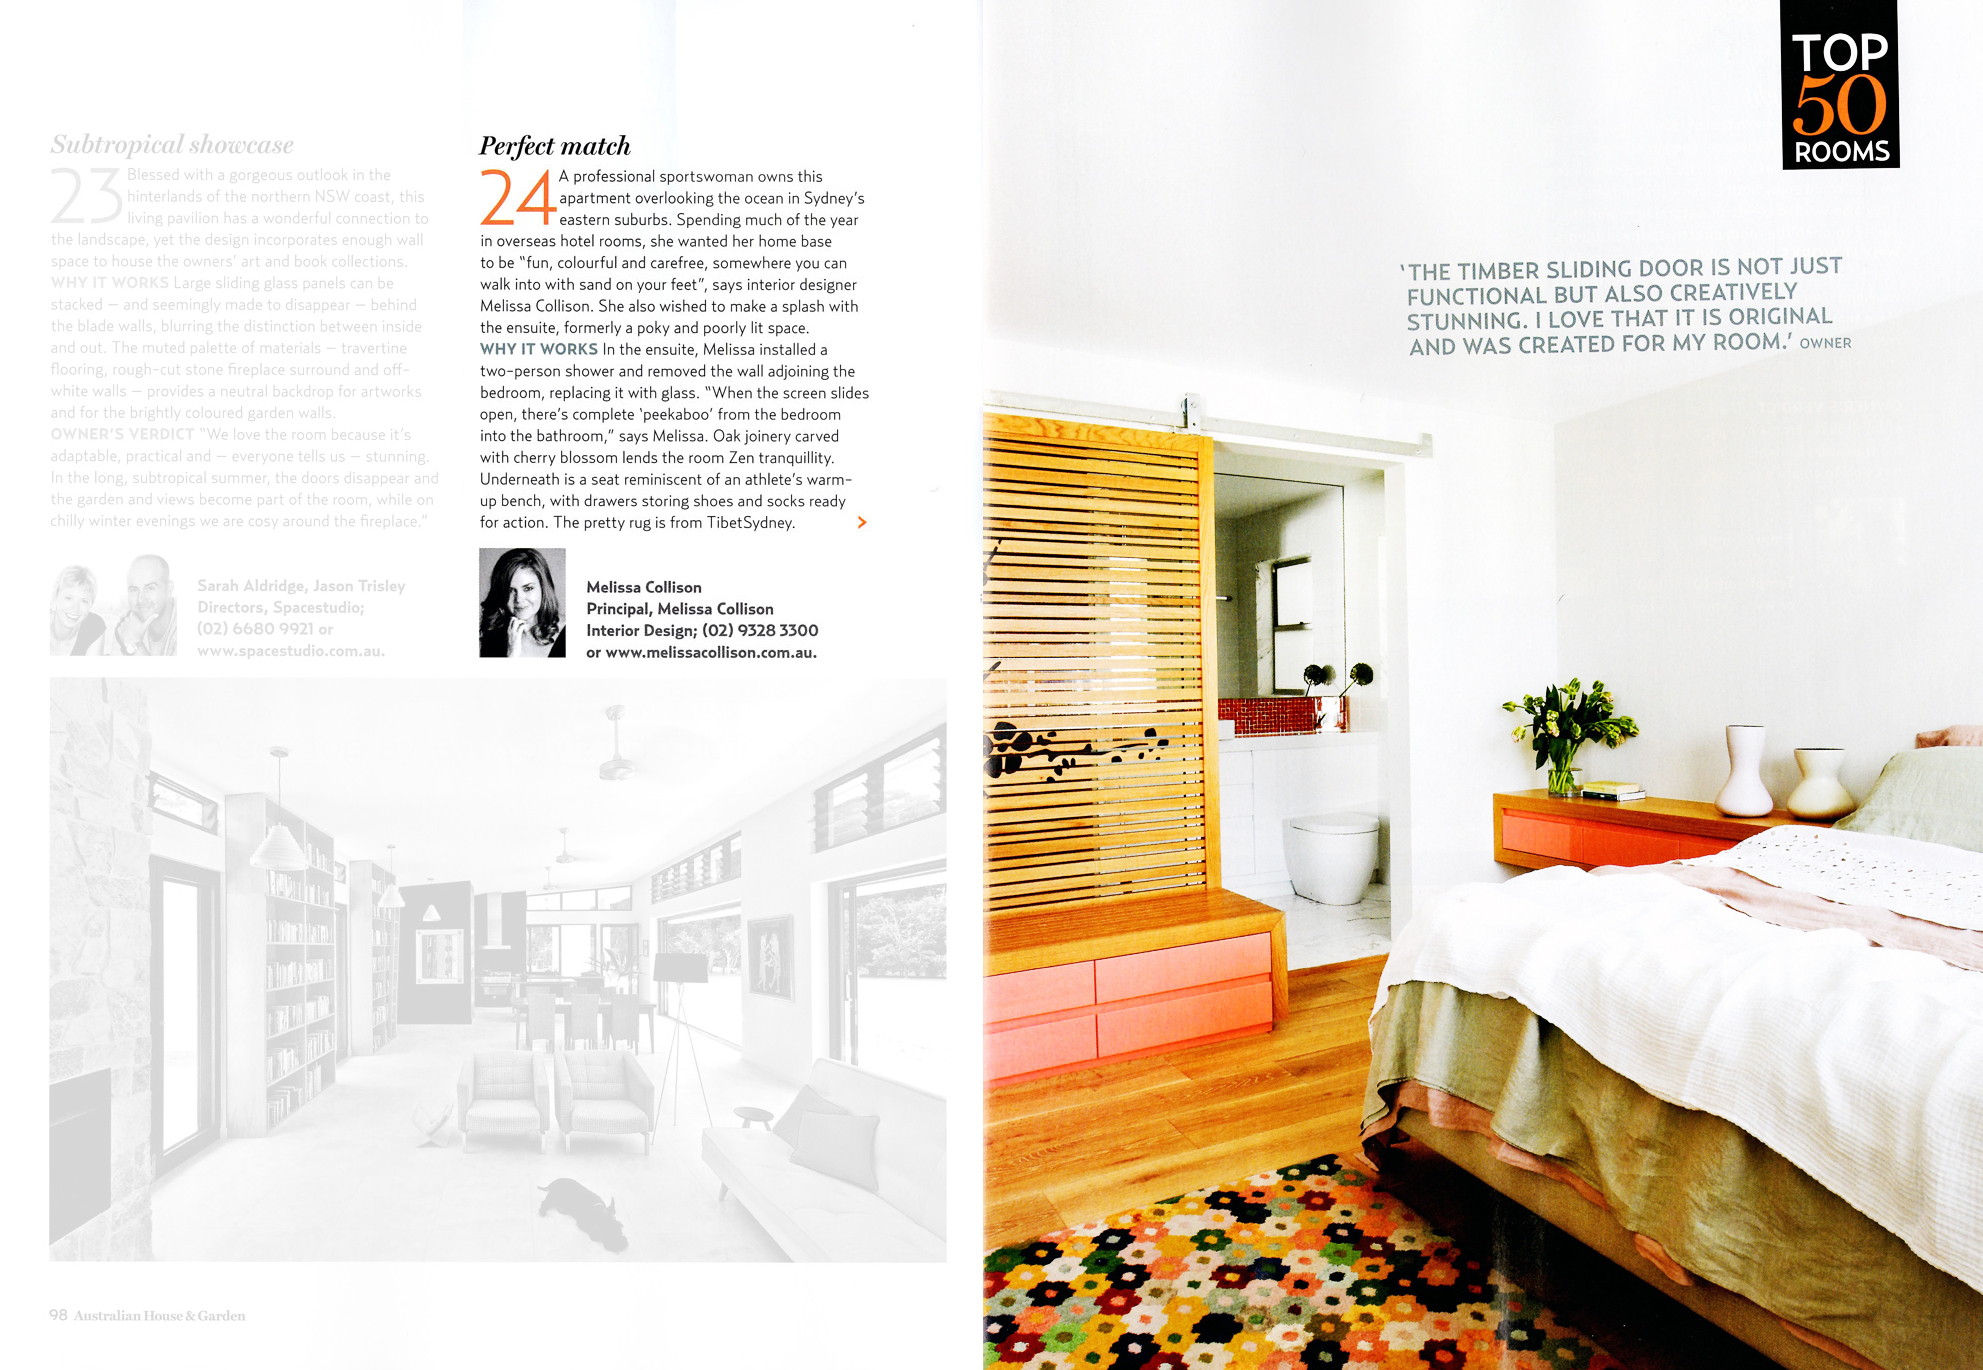 Coogee - Top 50 Rooms.jpg